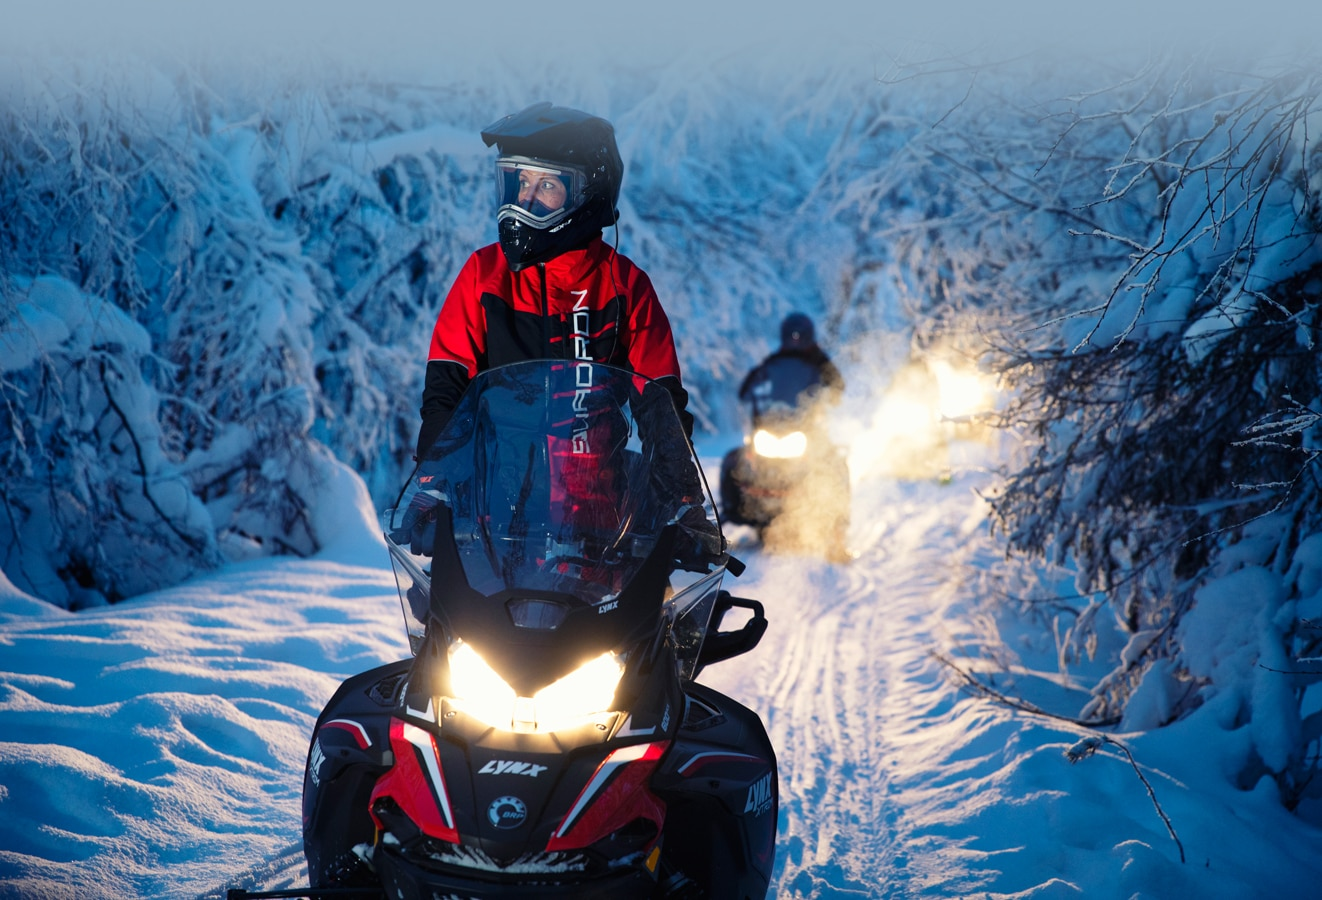 A group of drivers follow a snowy path in the forest with their Lynx Xtrim Snowmobile Model